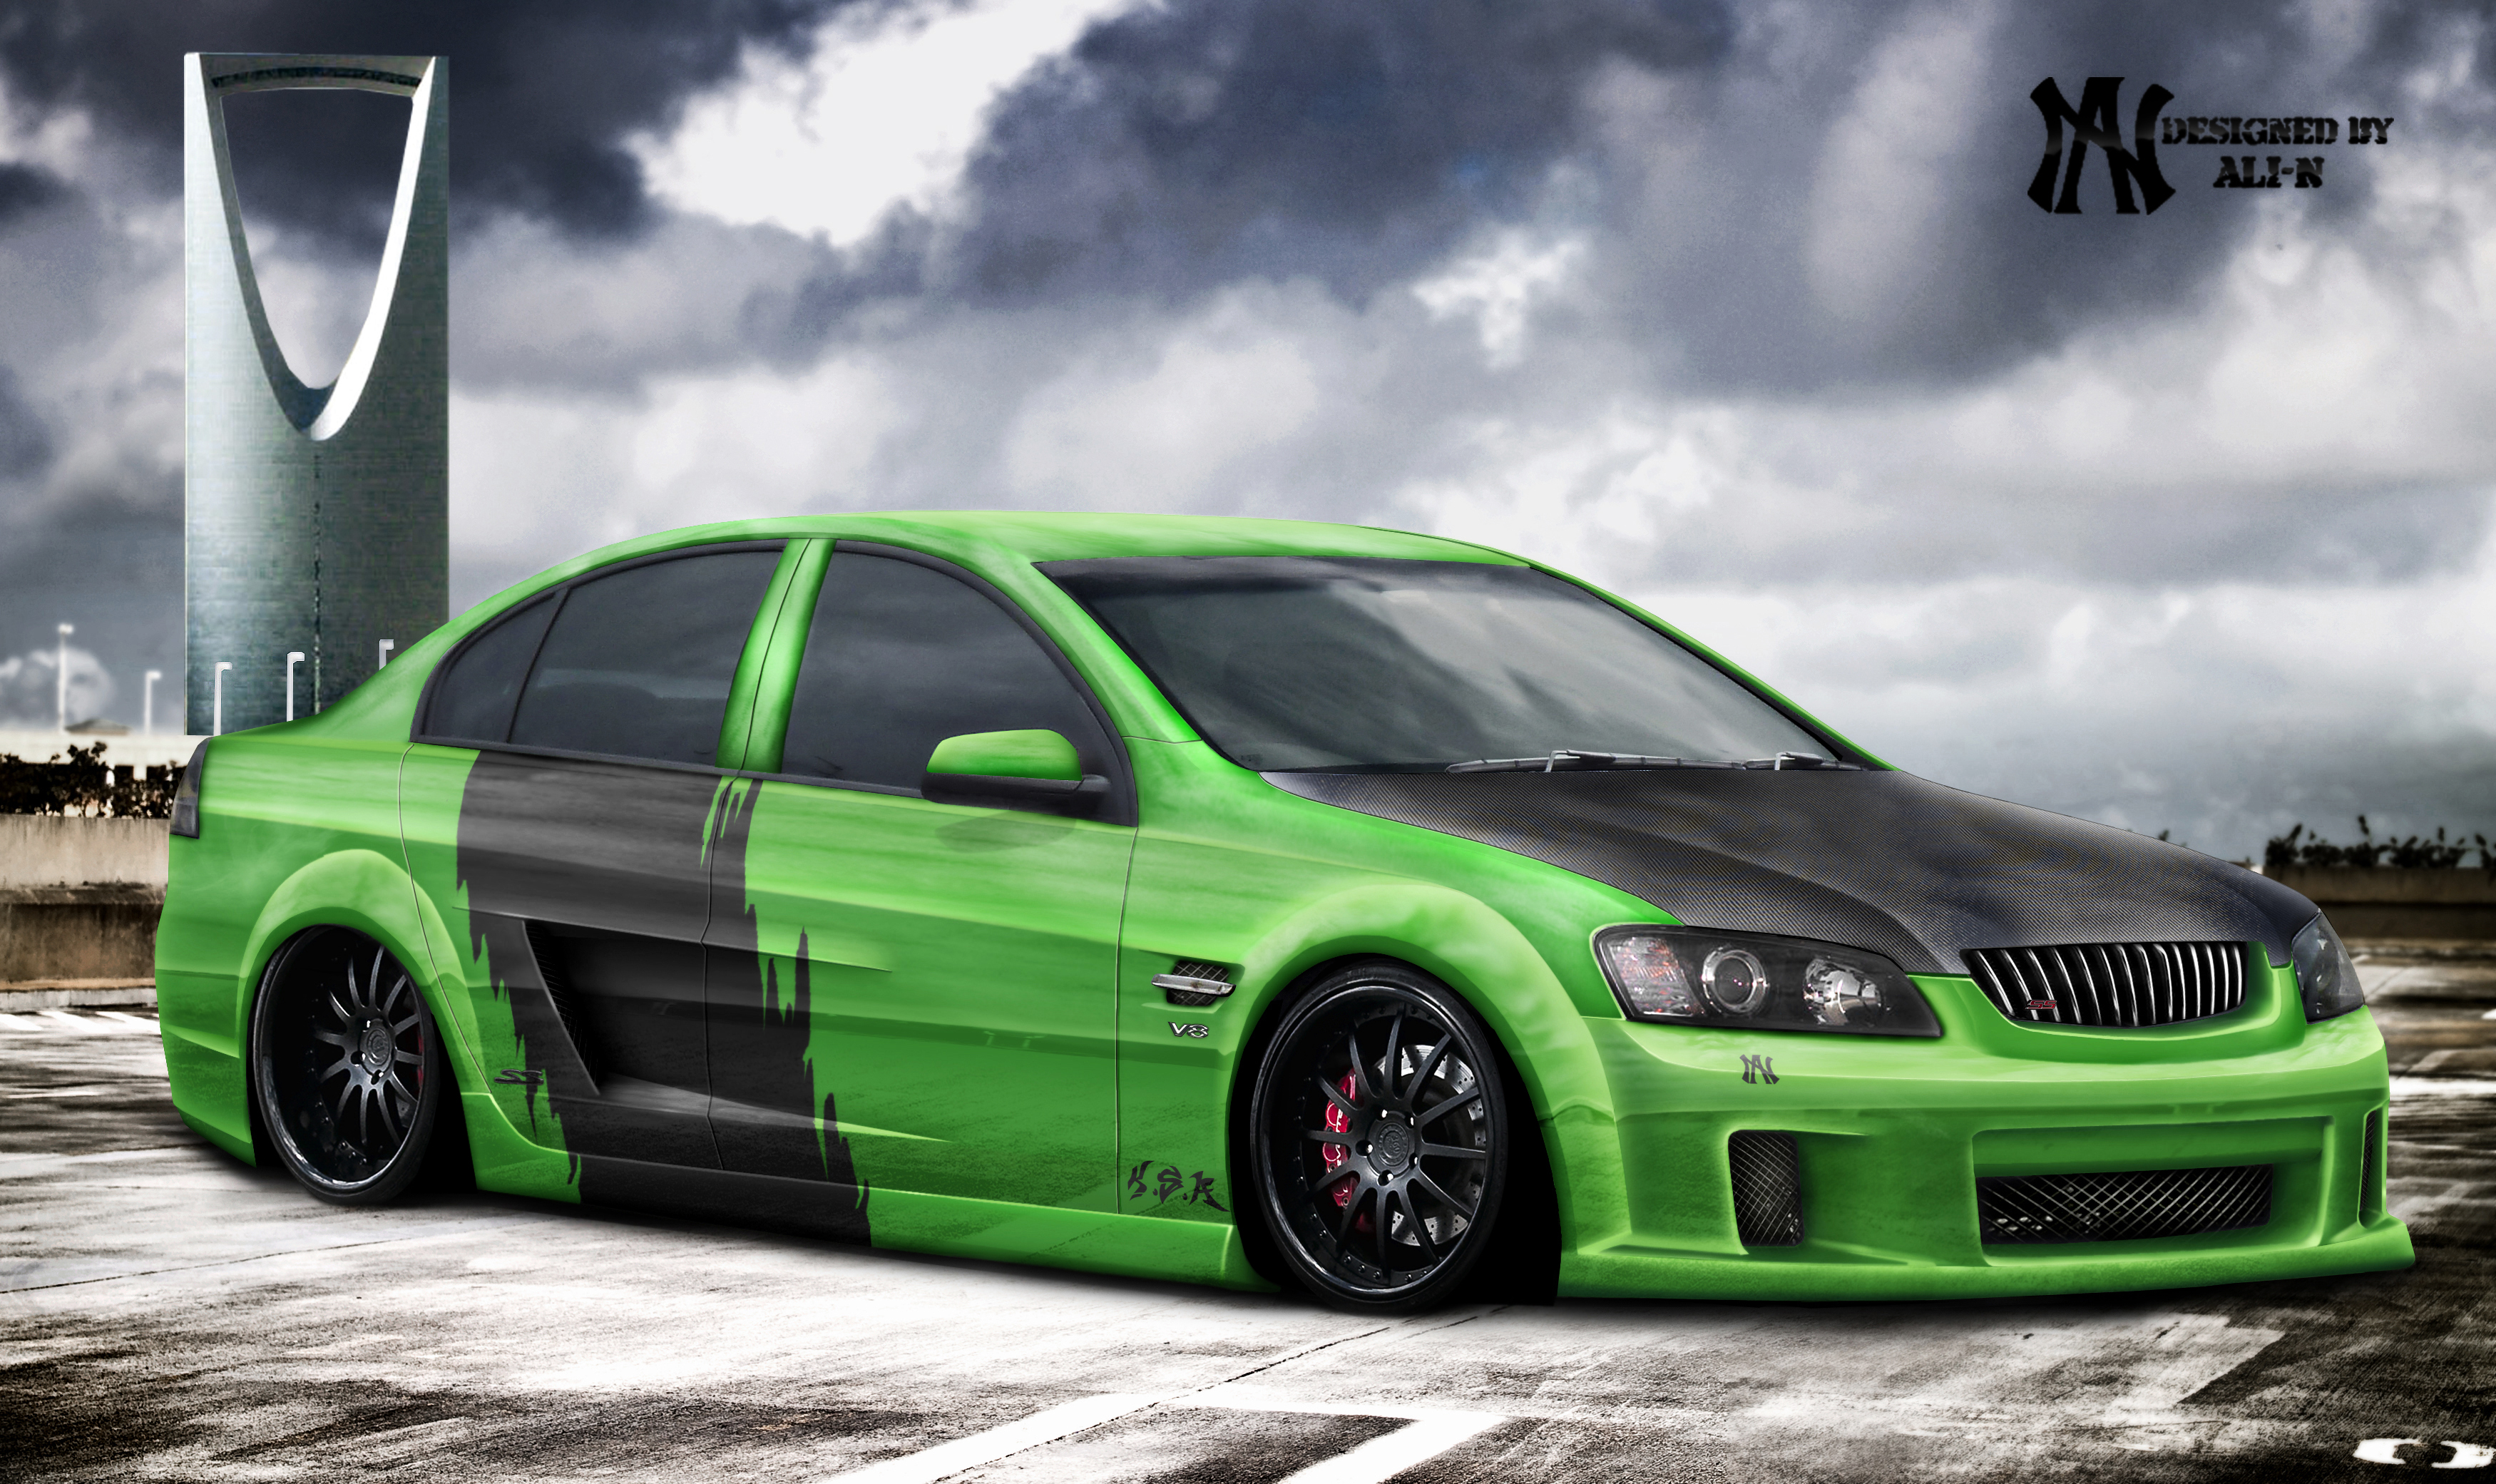 Holden Commodore SS by